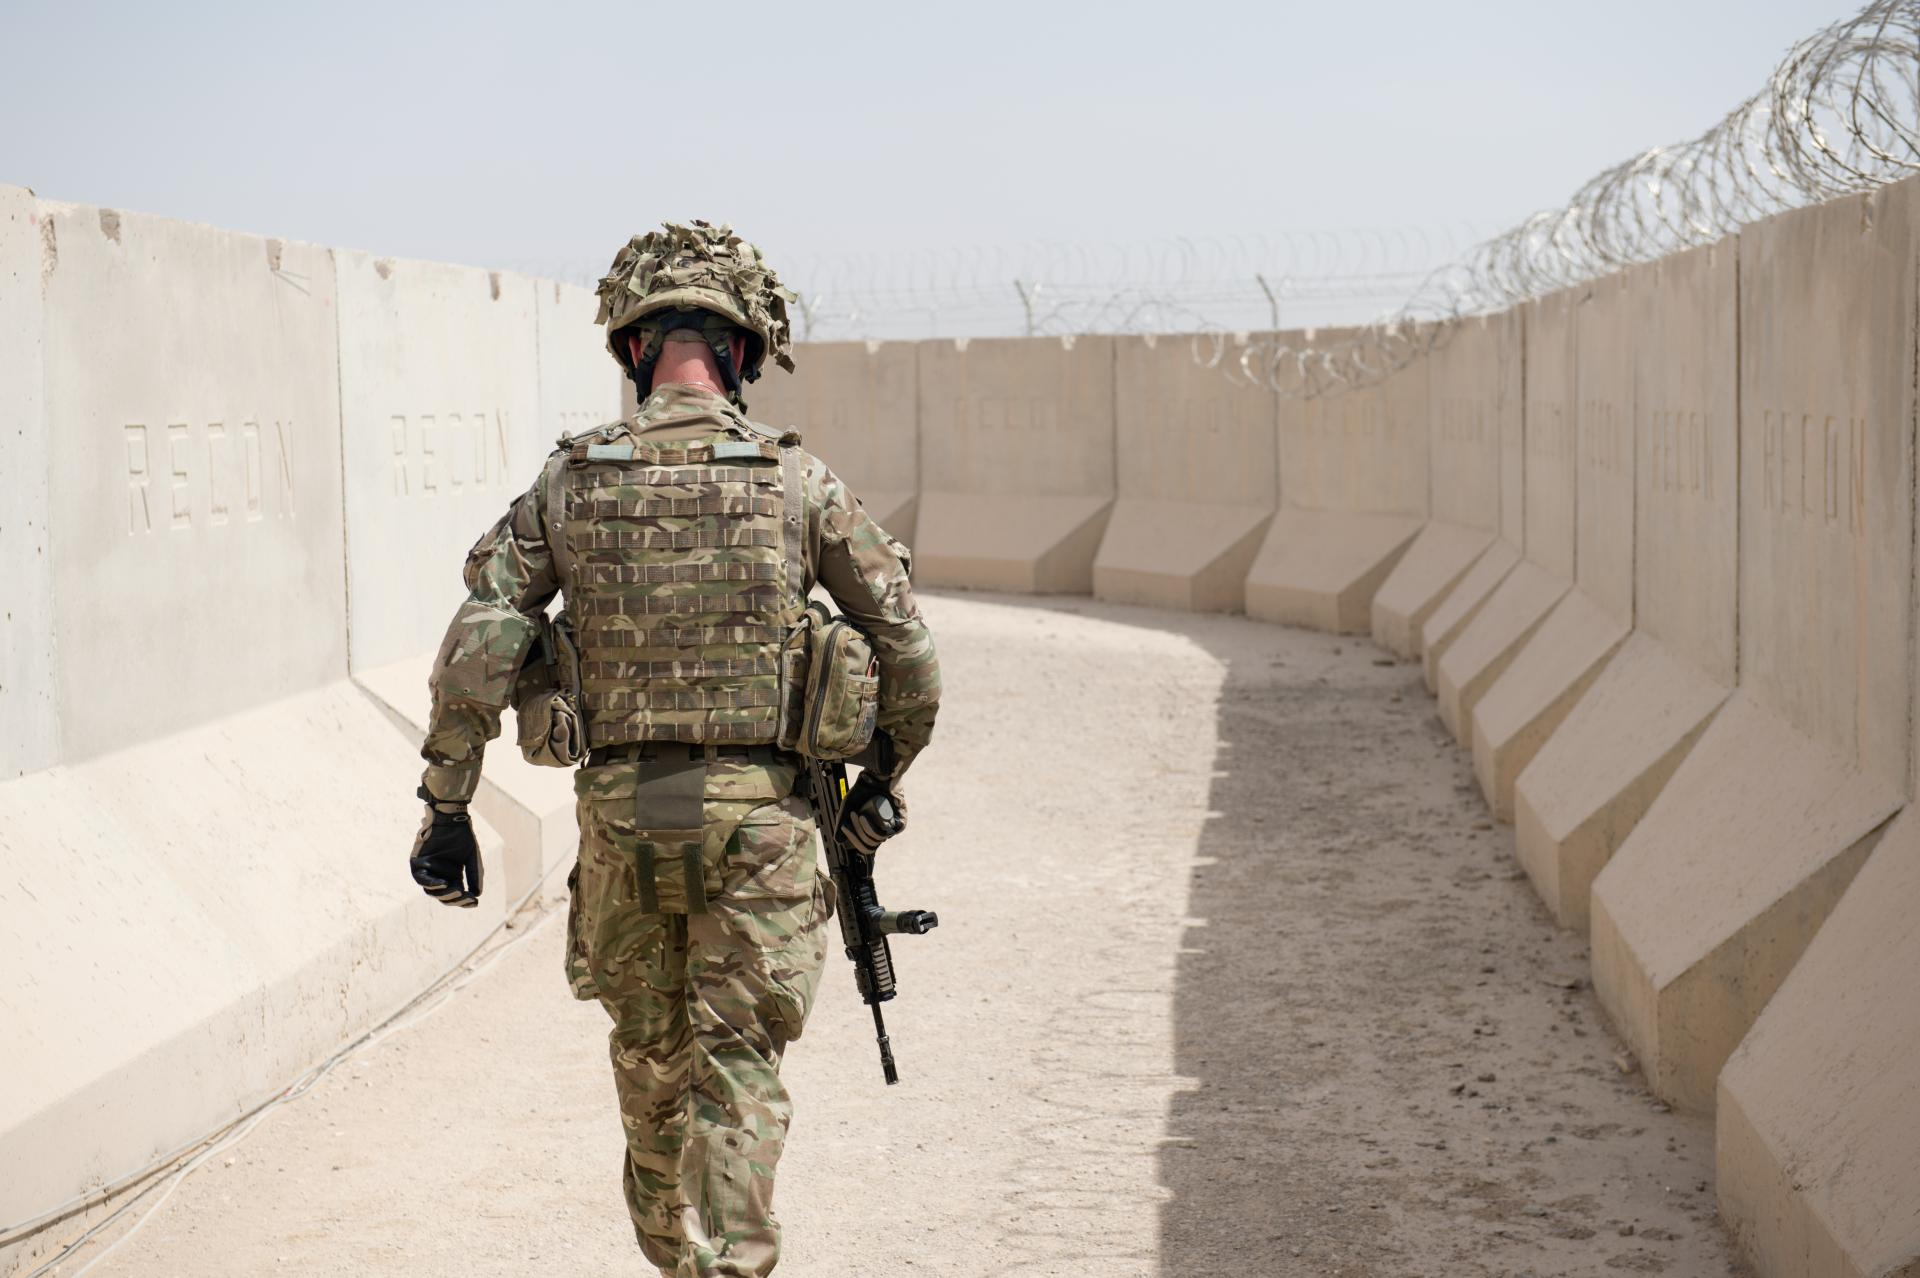 A soldier in uniform walks away from the camera at Camp Bastion, the principal British base in Helmand Province, Afghanistan